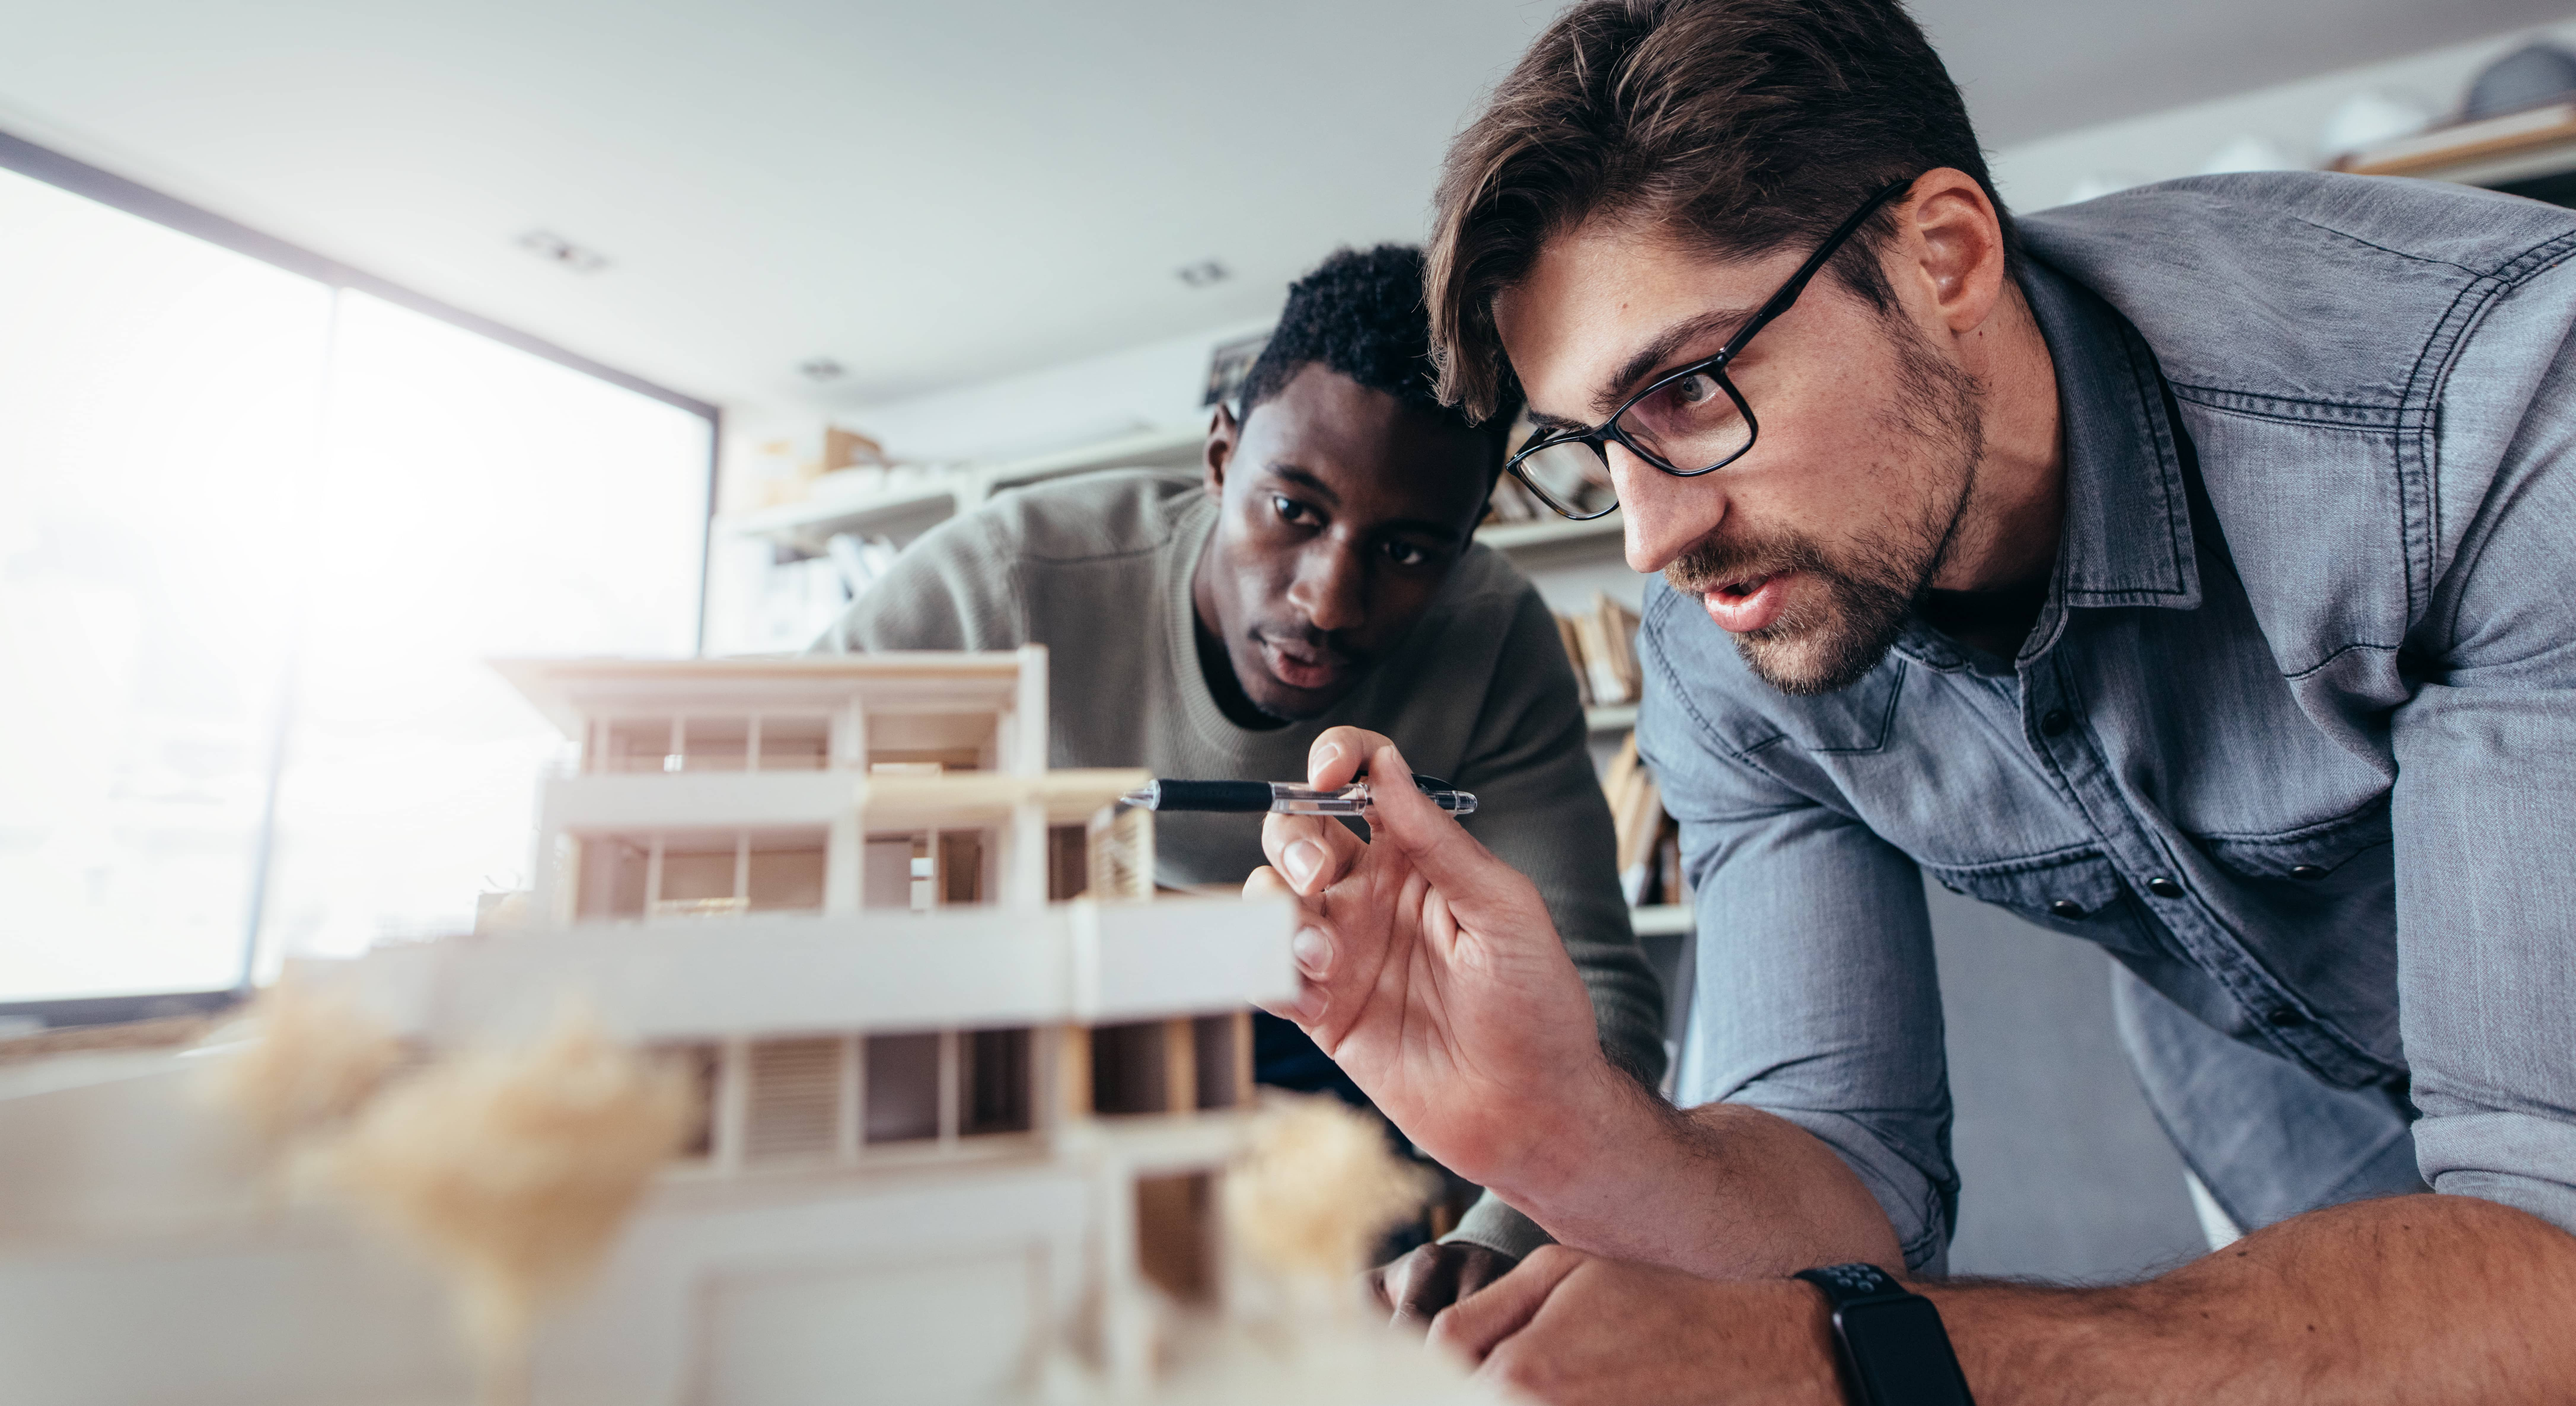 Two architects working on a model